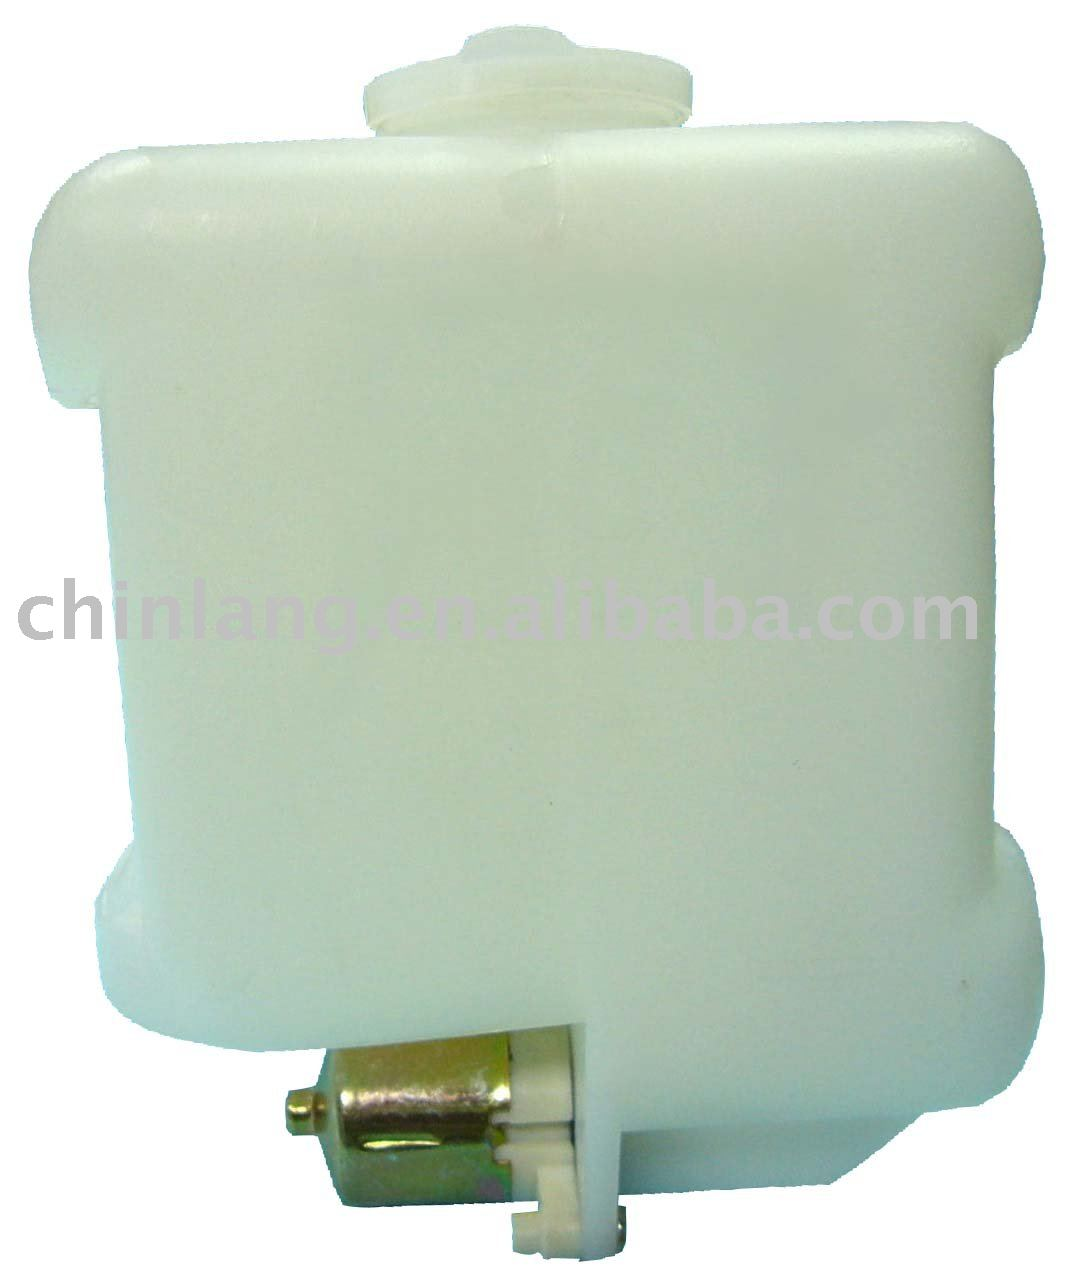 Windshield Washer/ Washer Tank/ Washer Reservoir For MITSUBISHI DELICA L300